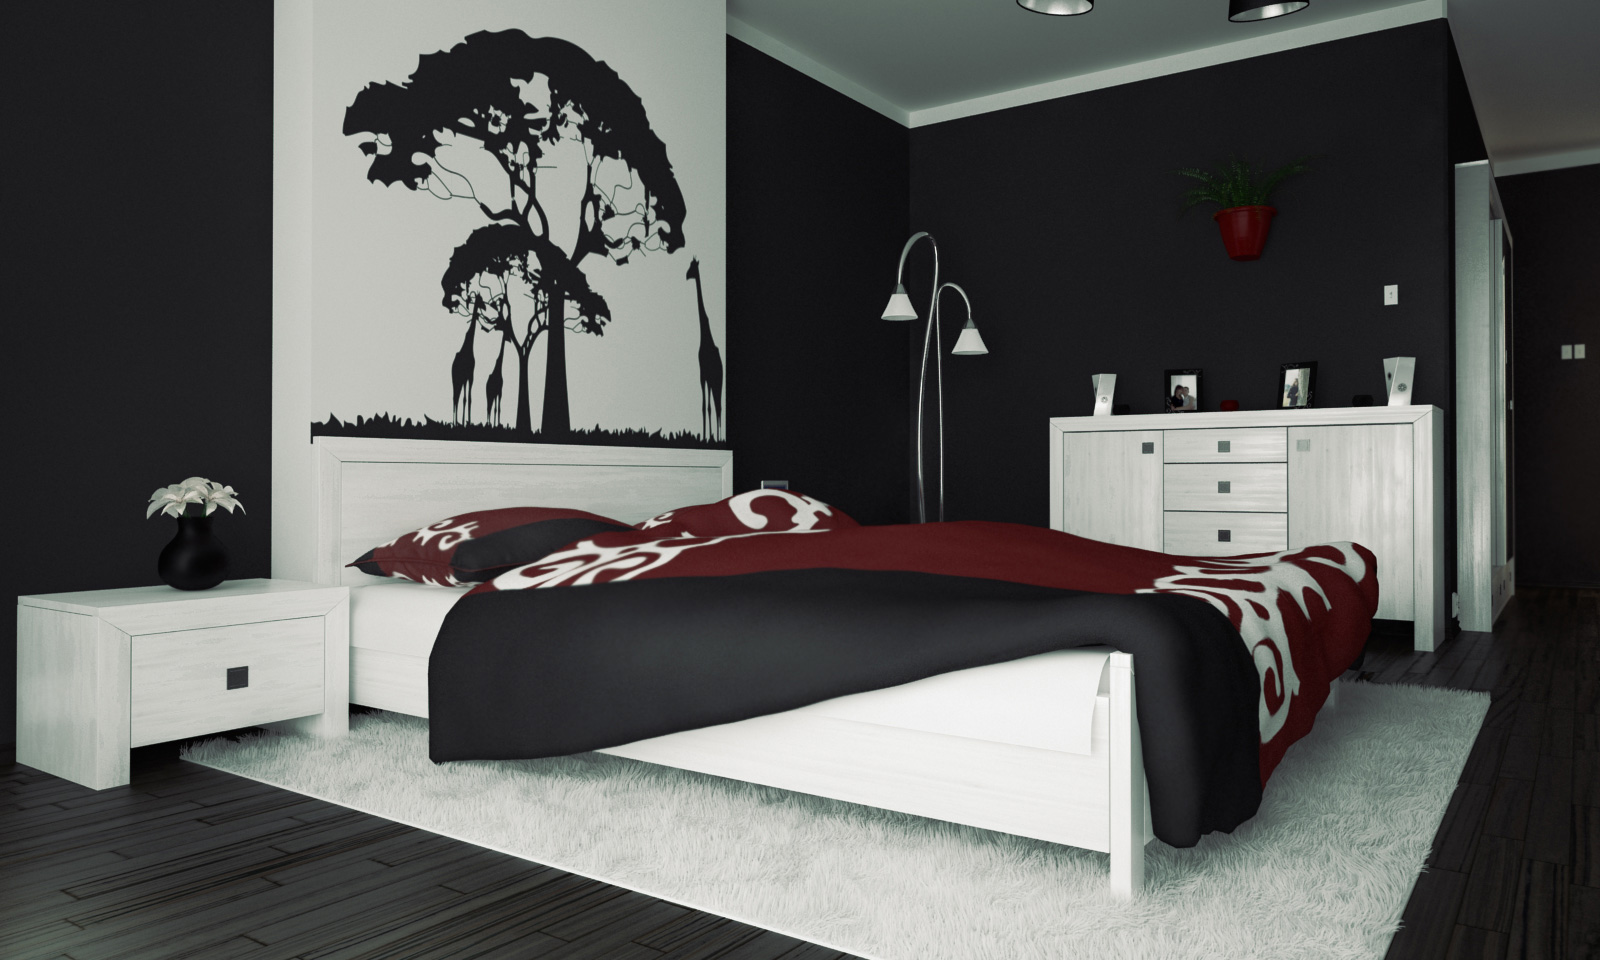 Interesting Black And White Mural Above Headboard Completing Black And  White Bedroom Interior Concept